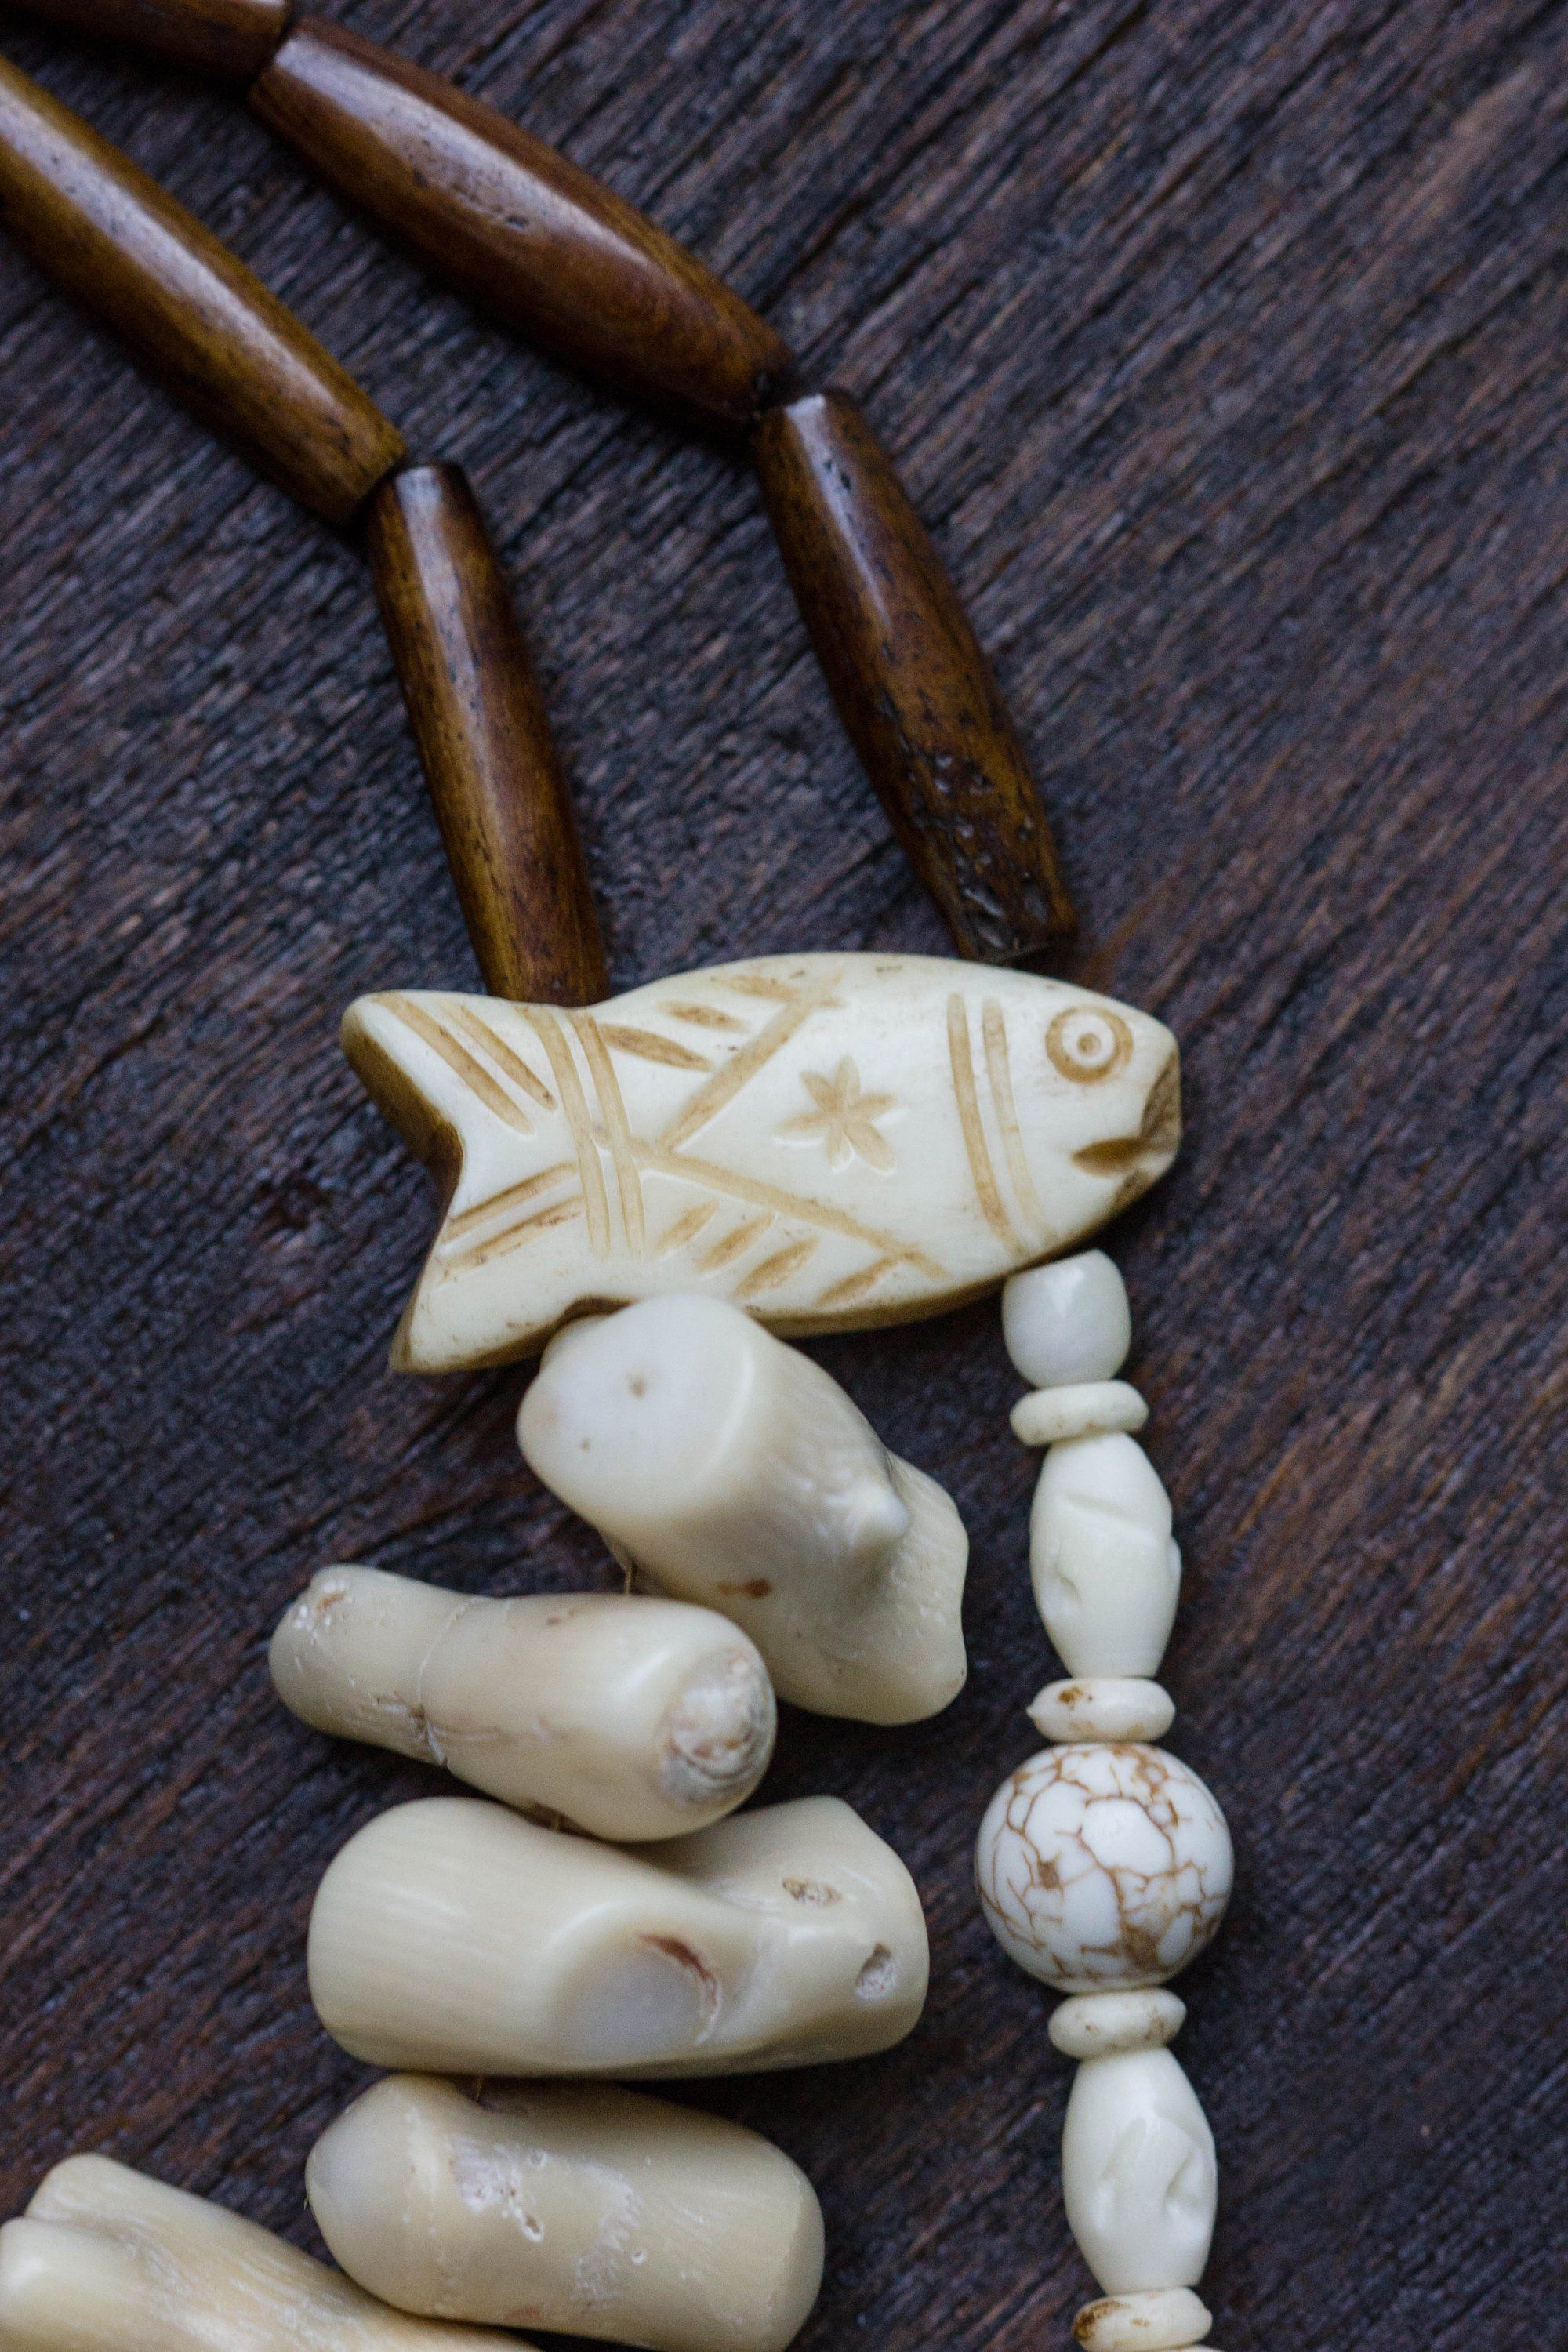 Native America Powwow Regalia Tribal Necklace With Carved Bone First Nation Jewelry Earthy Necklace Powwow Regalia Regalia